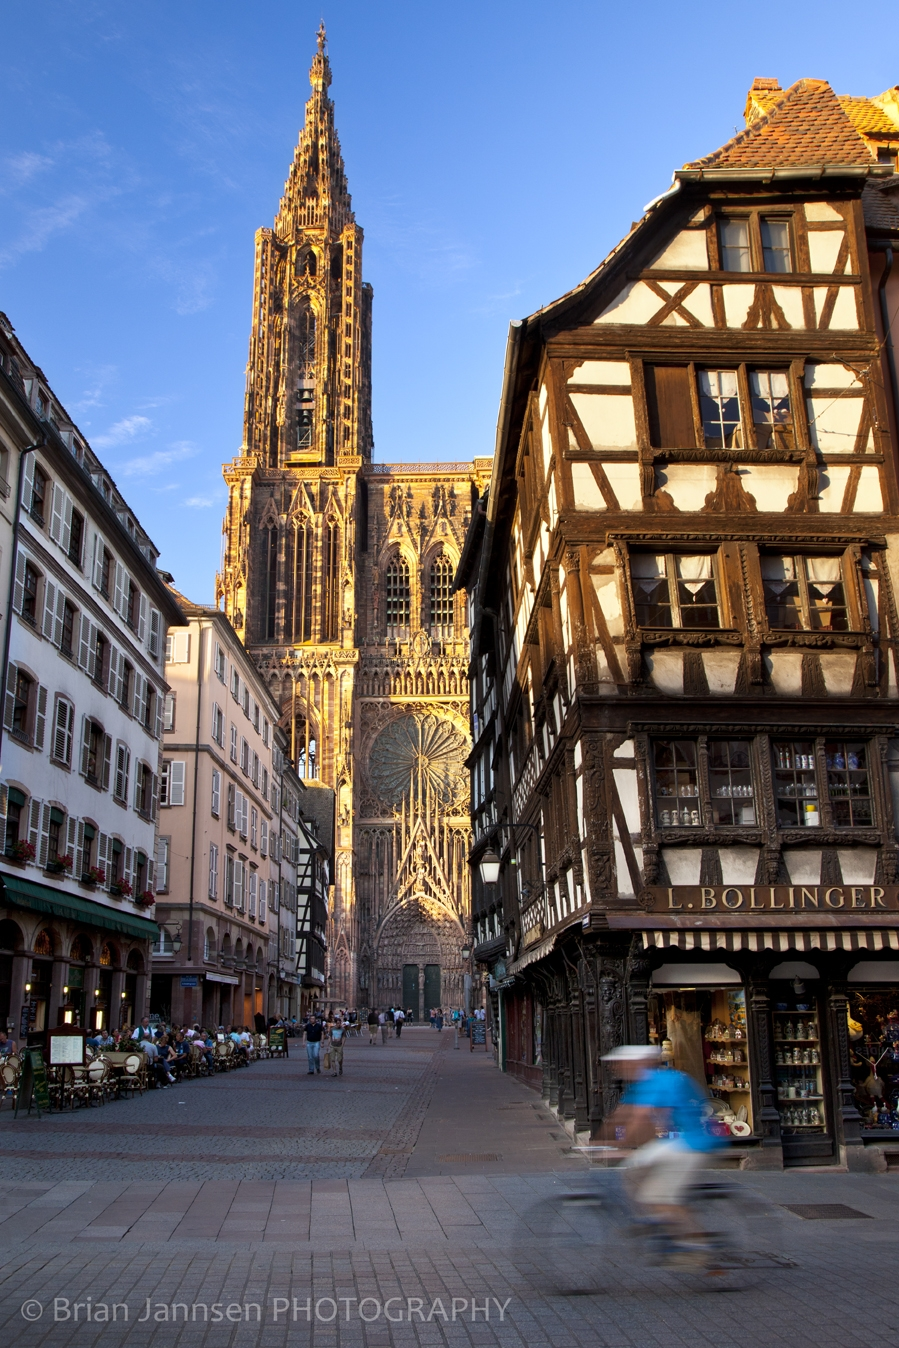 Guided tour through the storybook villages of alsace france for Alsace carrelage strasbourg